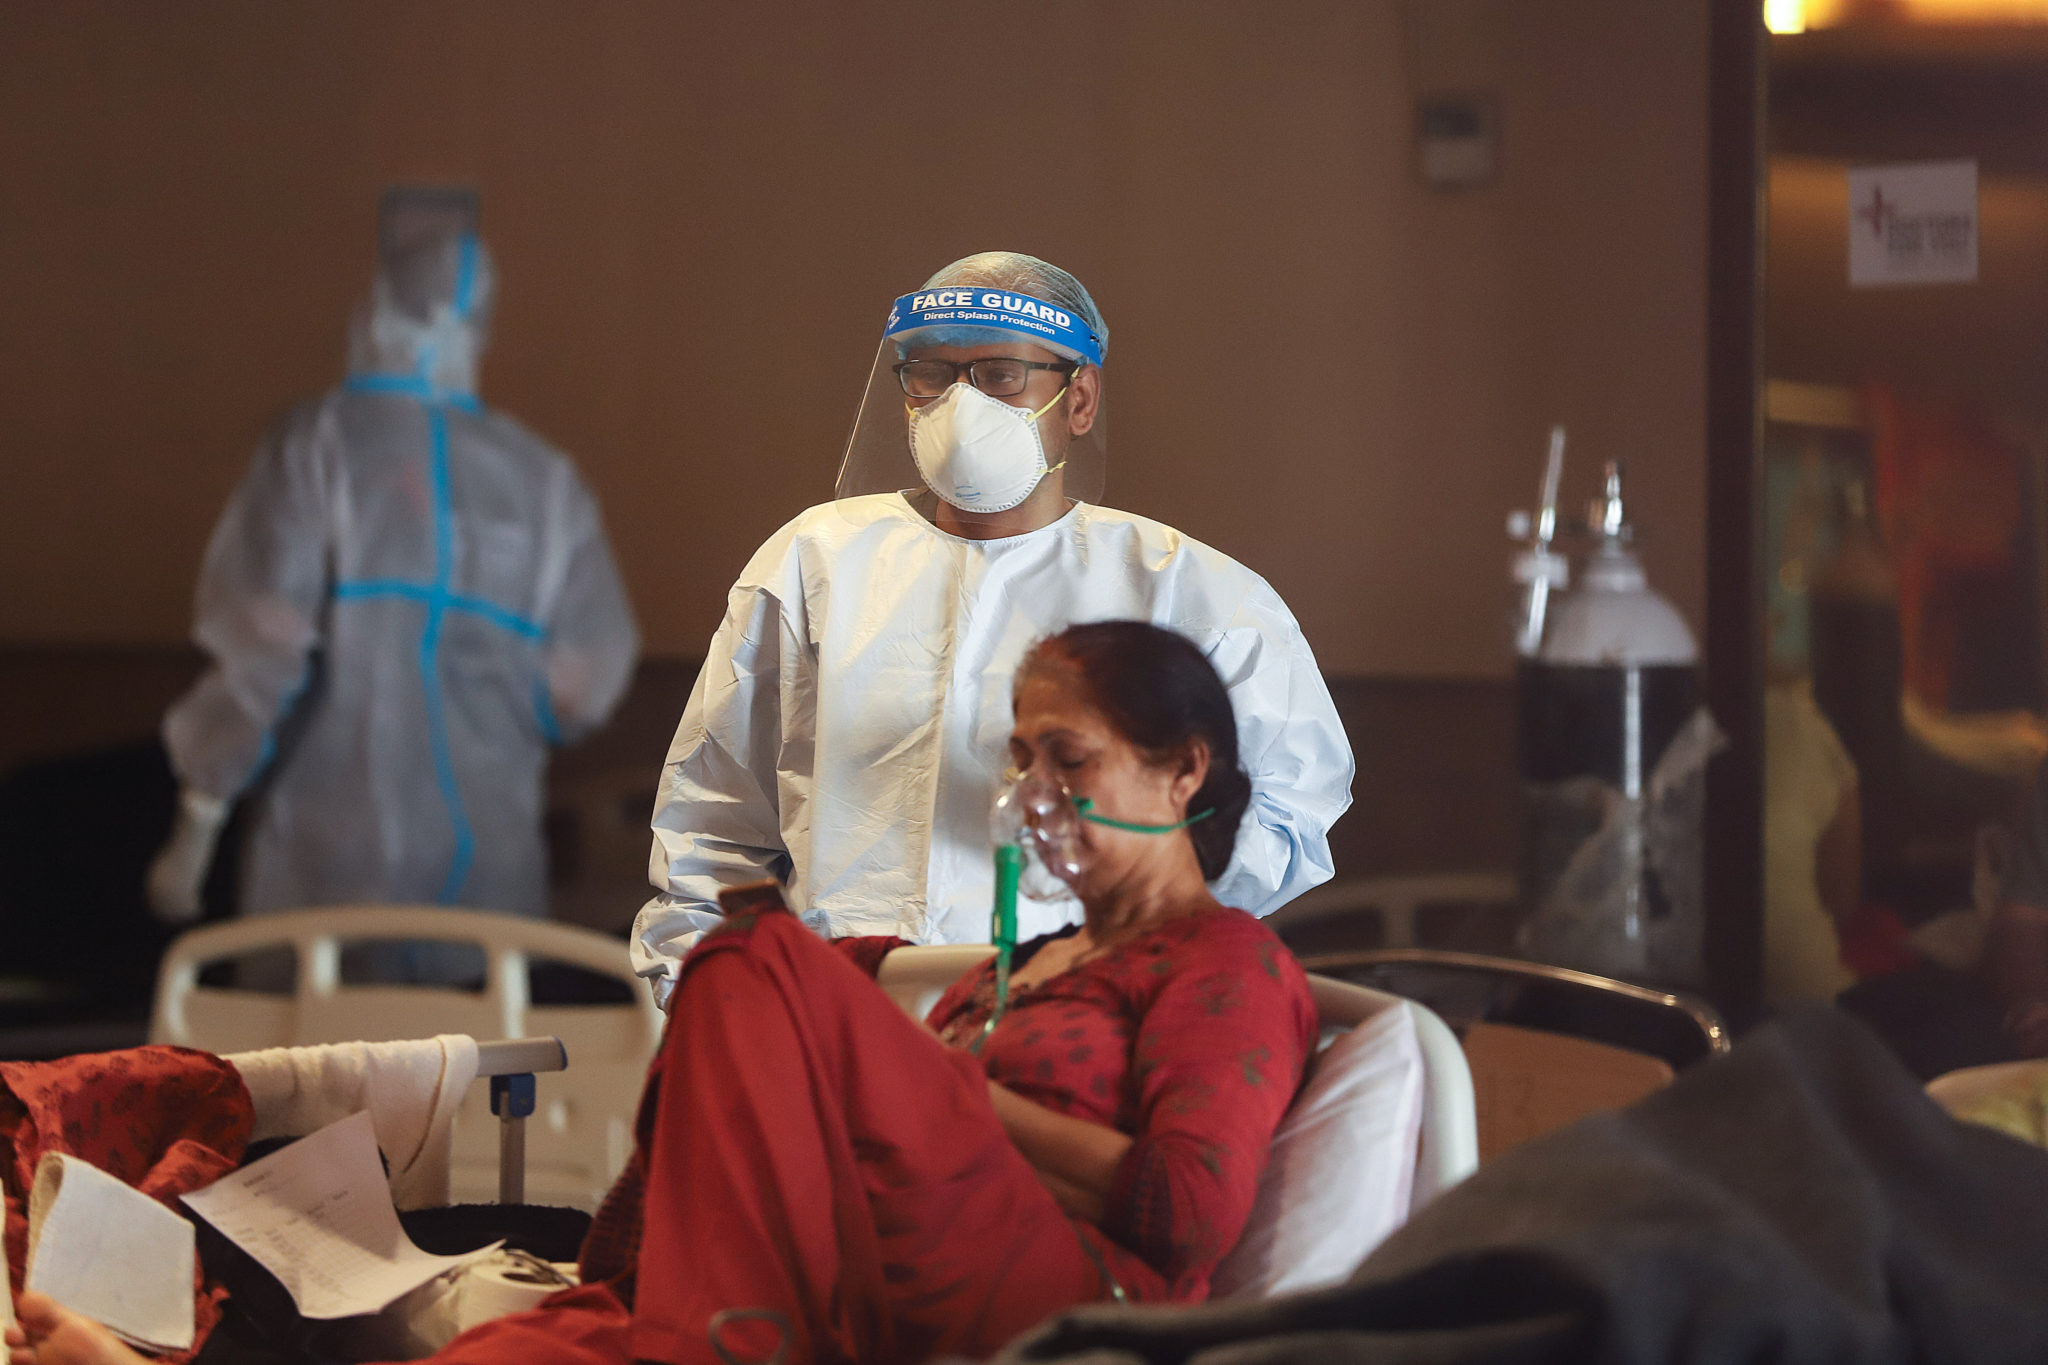 A Covid-19 patient seen resting in a Covid-19 isolation ward in New Delhi, India.